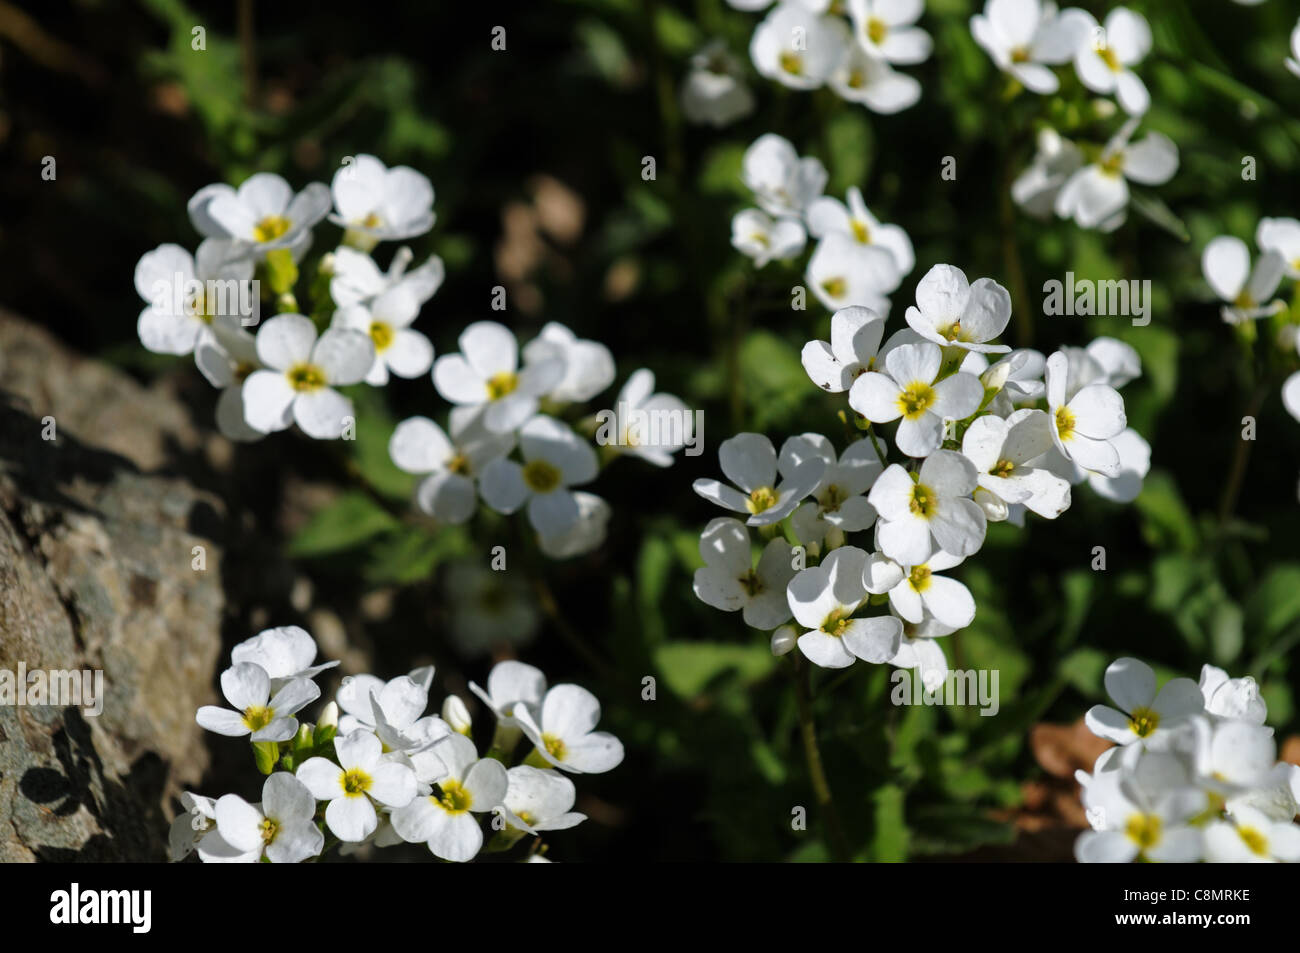 Arabis sicula perennial herbaceous plant white flowers blooms stock photo arabis sicula perennial herbaceous plant white flowers blooms blossoms dainty small spring dhlflorist Image collections